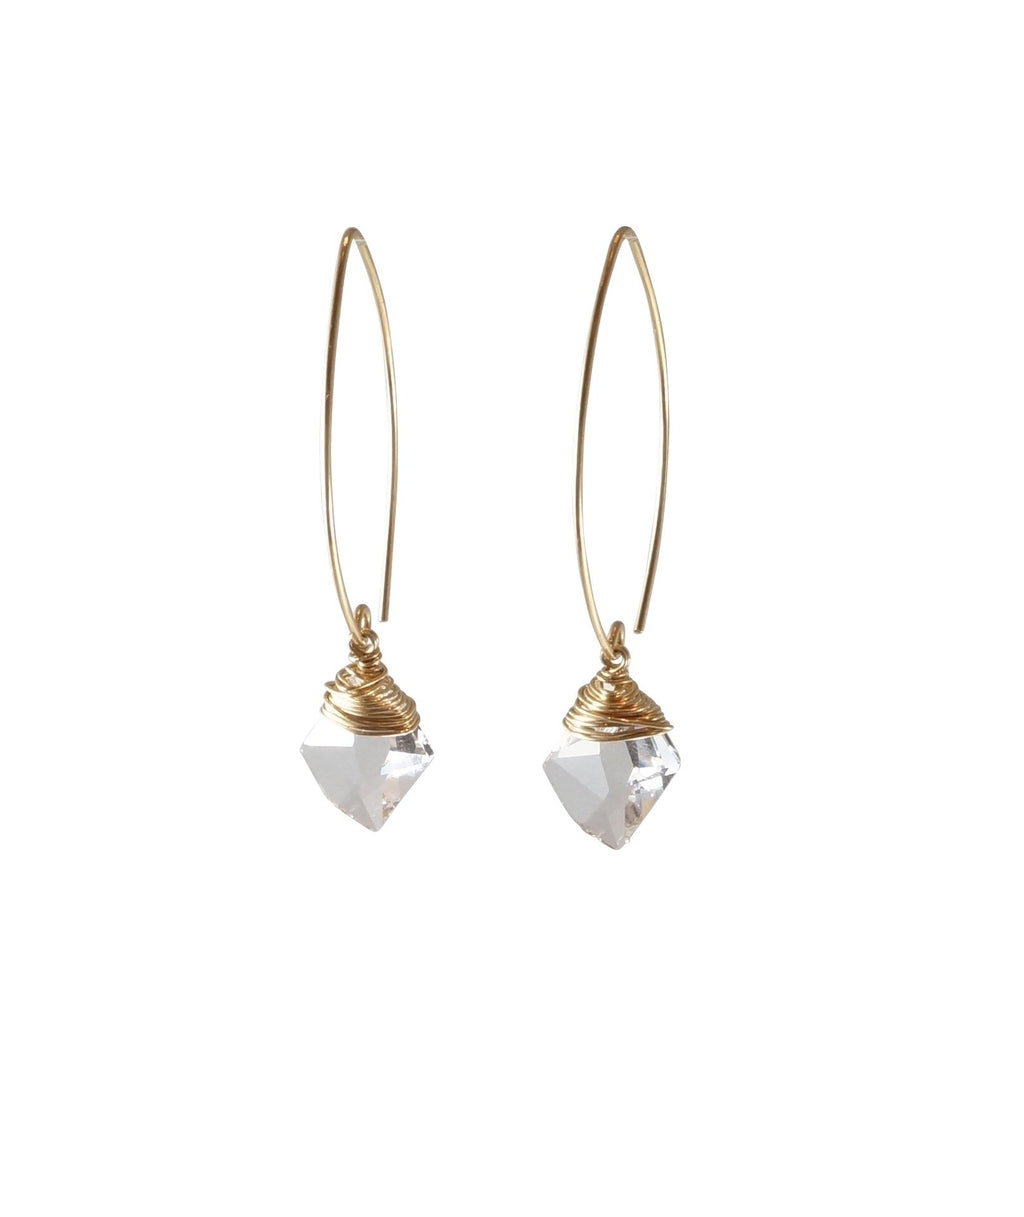 Gold Filled Swarovski Crystal Bead Earrings